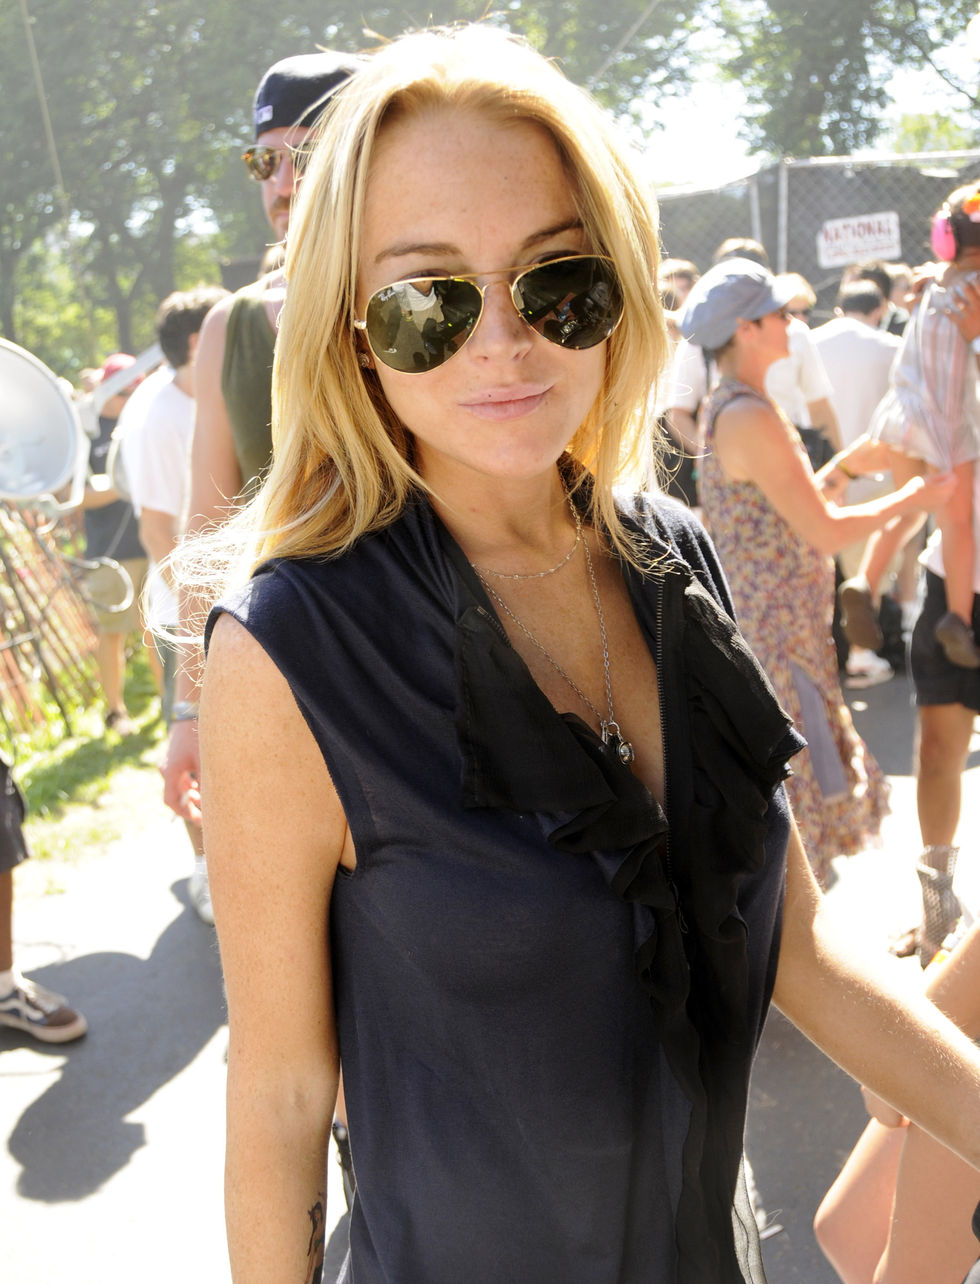 lindsay-lohan-2008-lollapalooza-music-festival-in-chicago-01